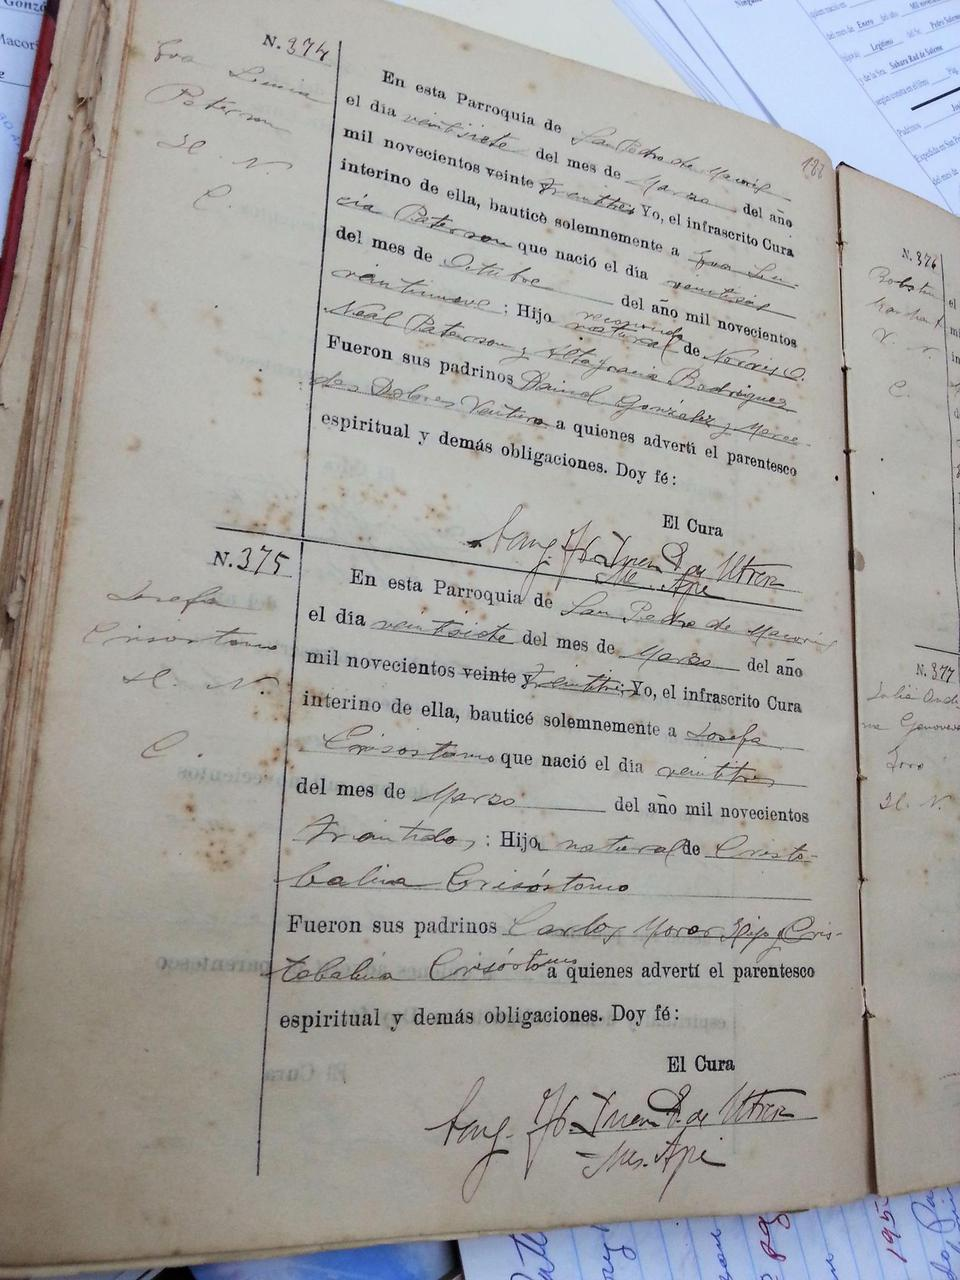 A baptism ledger from 1923